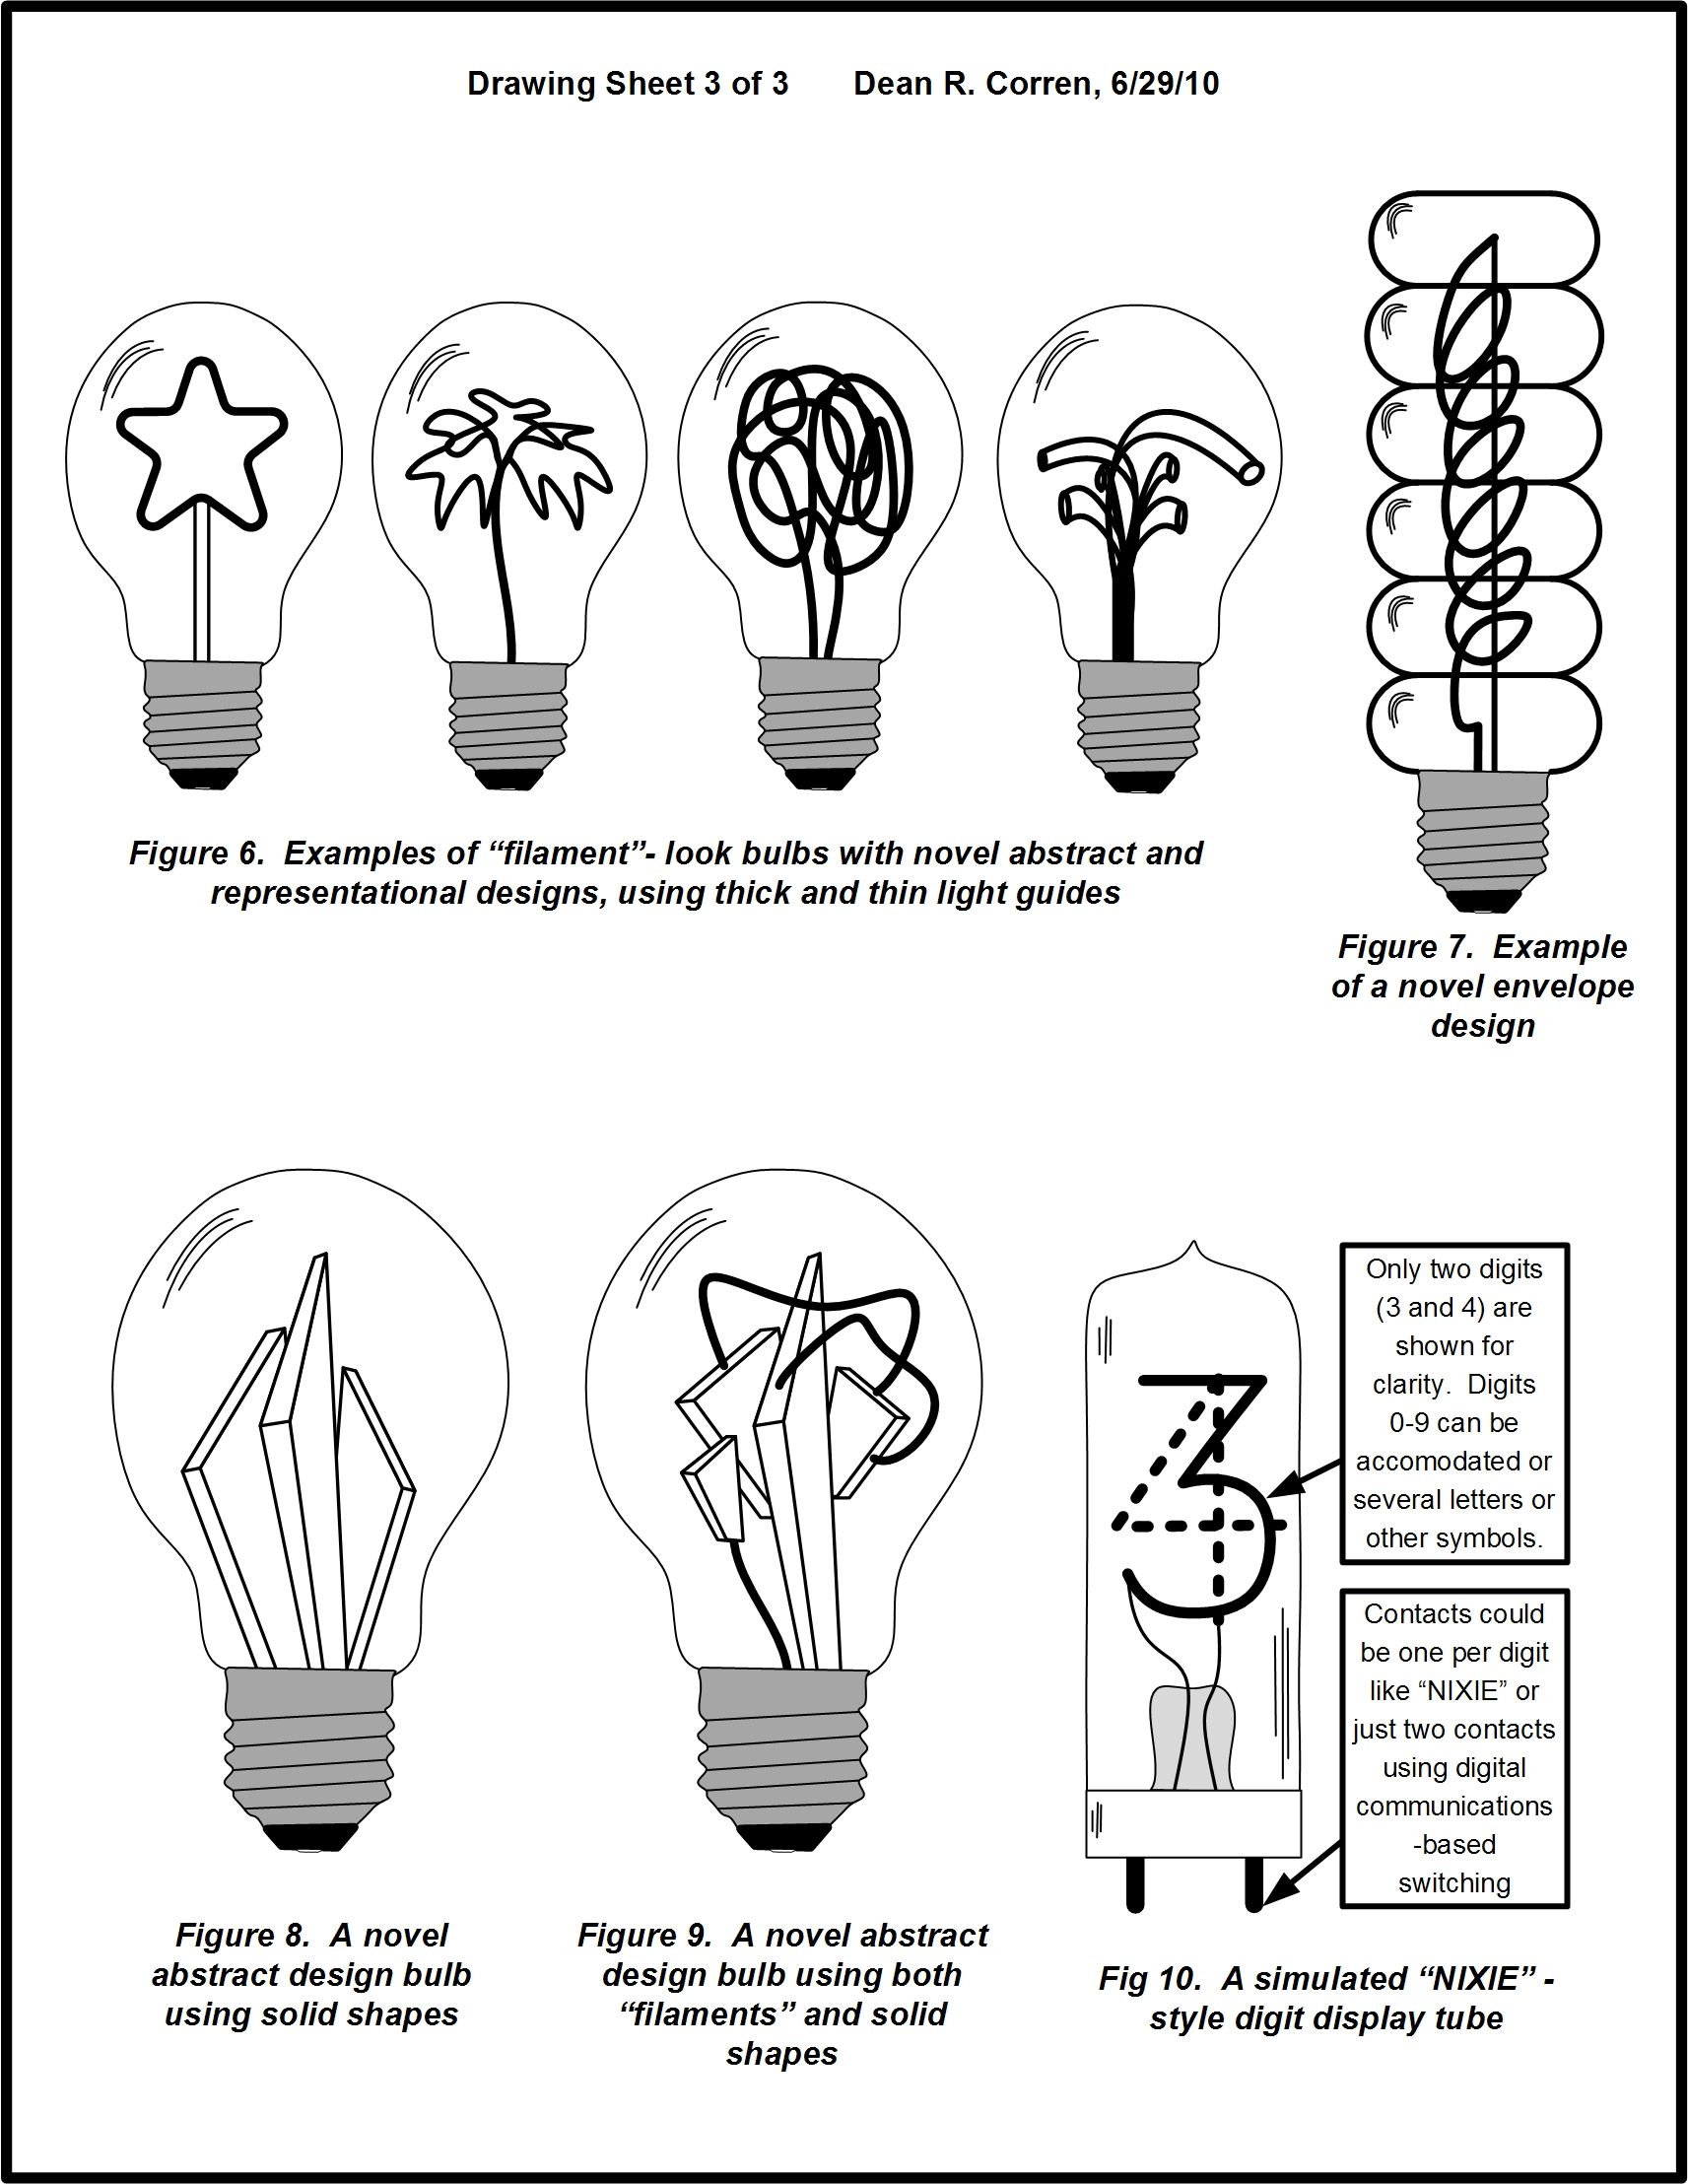 High Efficiency Light Bulb With Incandescent Look Create The Diagram Group Picture Image By Tag Modern Bulbs Such As Compact Fluorescents And Emitting Diode Led Very Different From Conventional Vintage